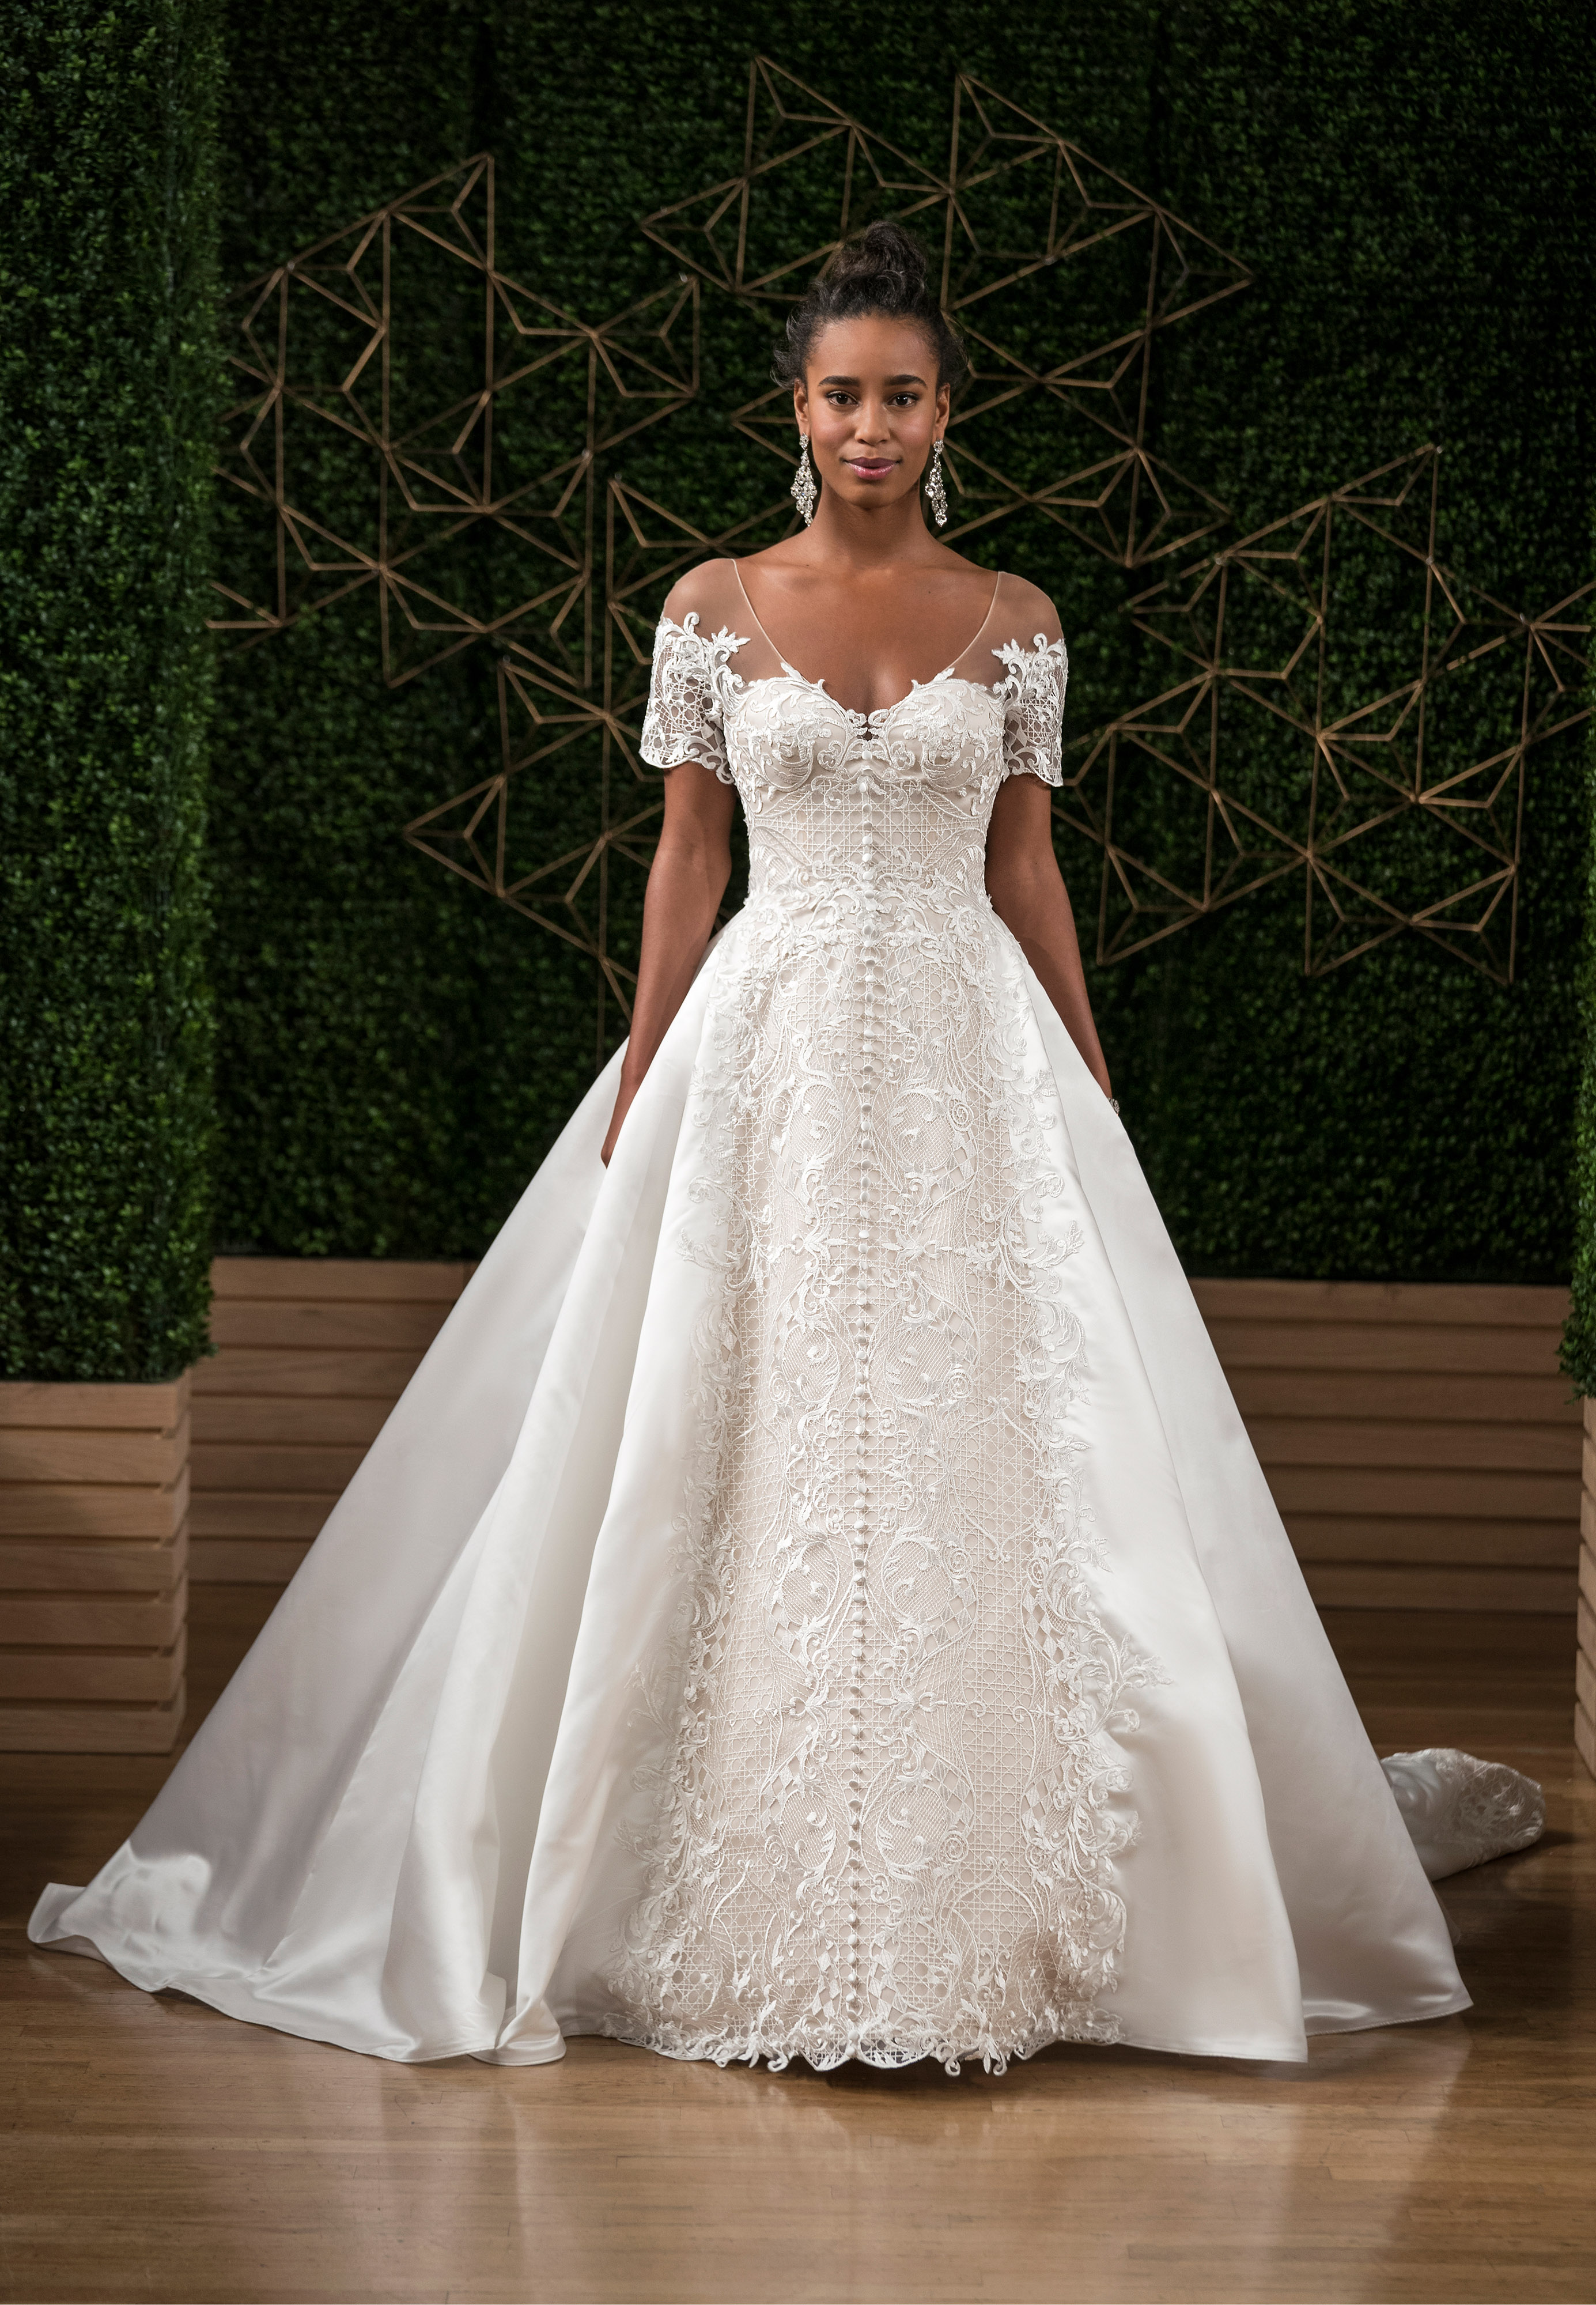 sottero midgley wedding dress fall 2018 off the shoulder ball gown buttons lace